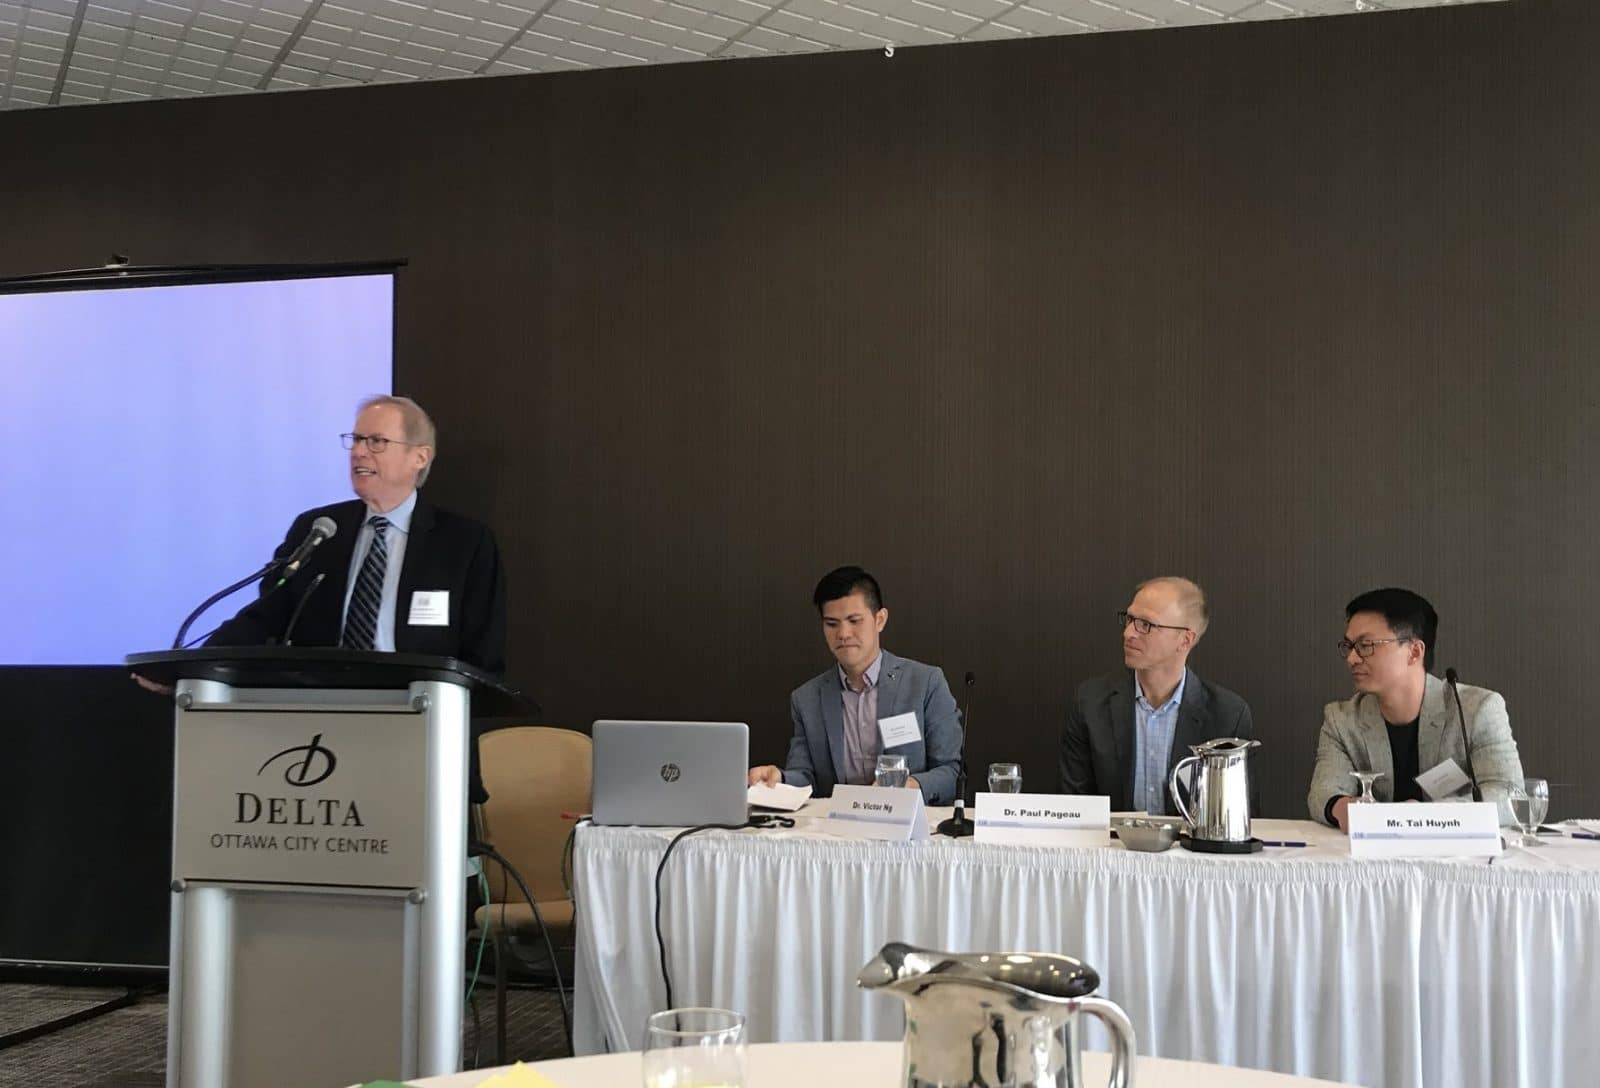 Dr. Martin Reed, Chair of the CAR Referral Guidelines Working Group, speaking at the symposium on diagnostic imaging referral guidelines, appropriateness, and computerized clinical decision support systems, held in Ottawa on January 29, 2018. cNext to him are, from left to right, Dr. Victor Ng, CFPC physician advisor, Dr. Paul Pageau, CAEP President, and Mr. Tai Huynh, Choosing Wisely Canada campaign director.